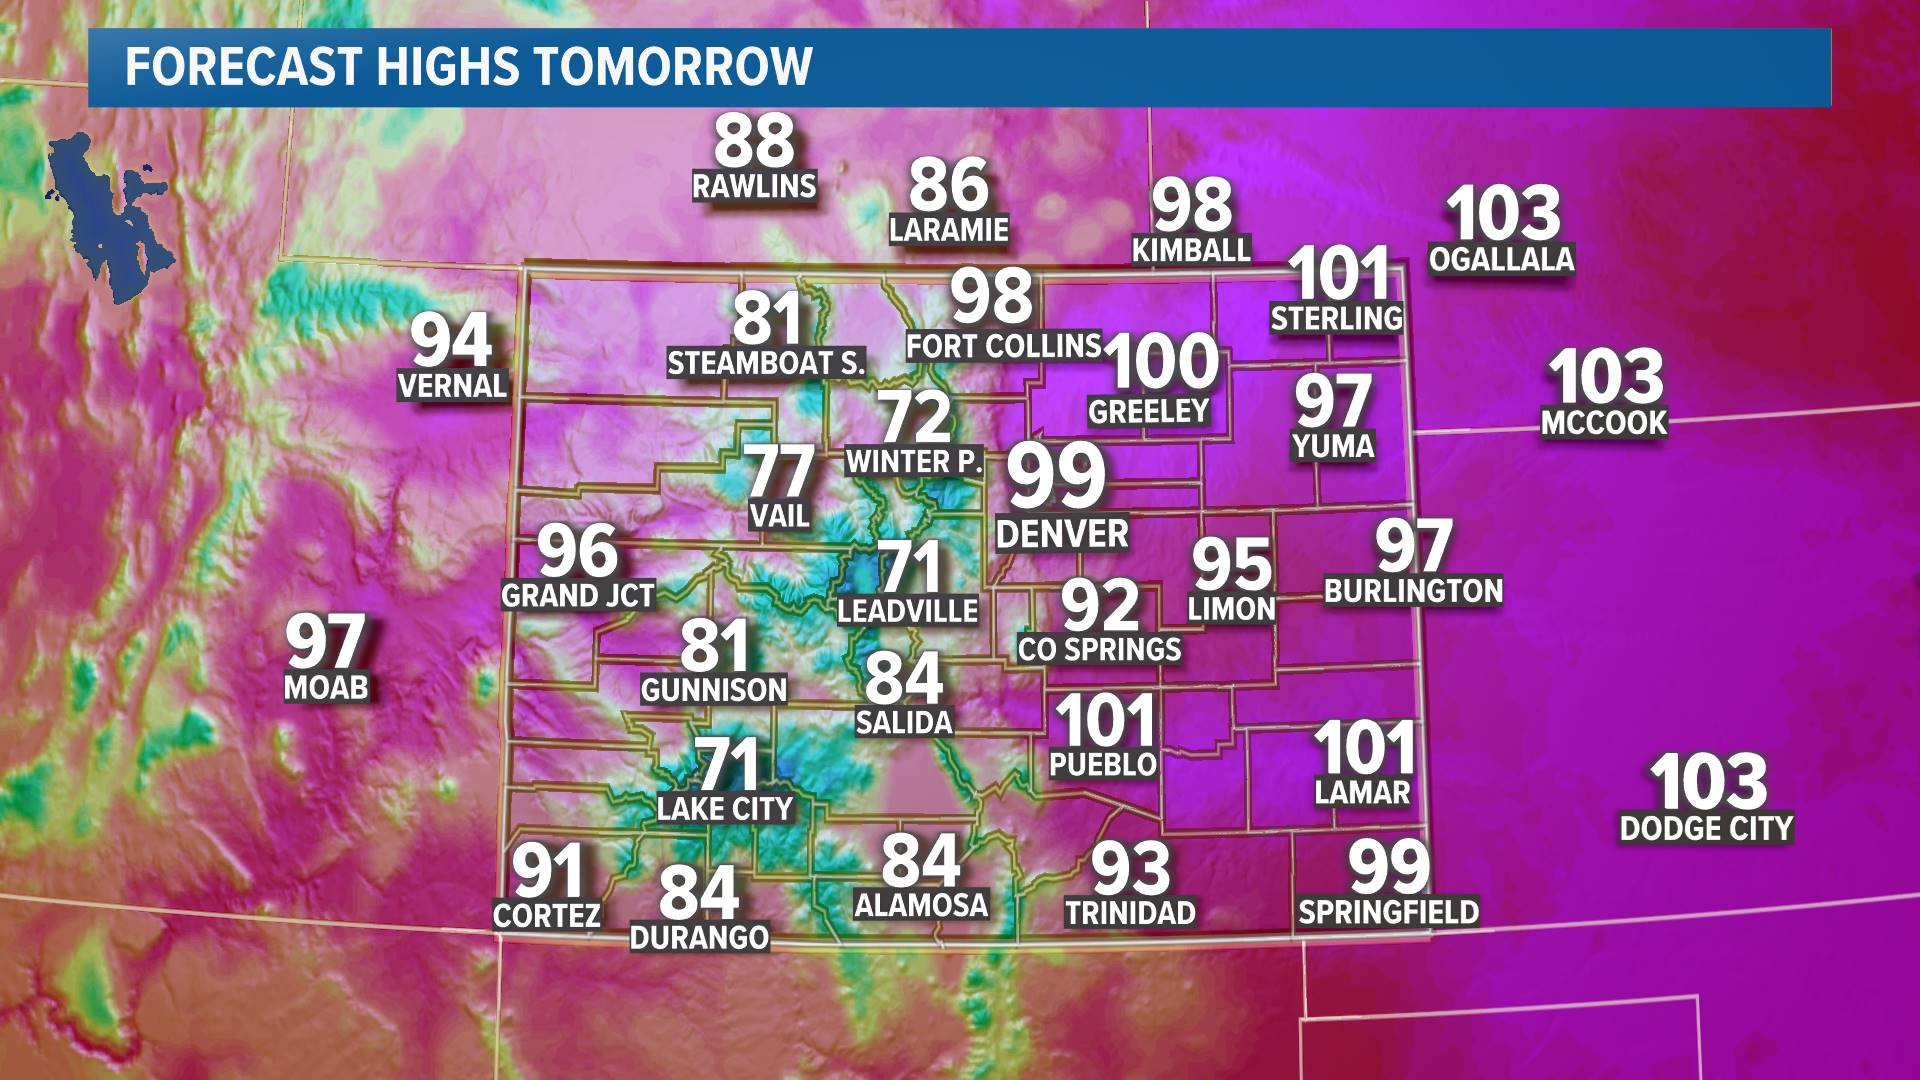 Regional Highs Tomorrow